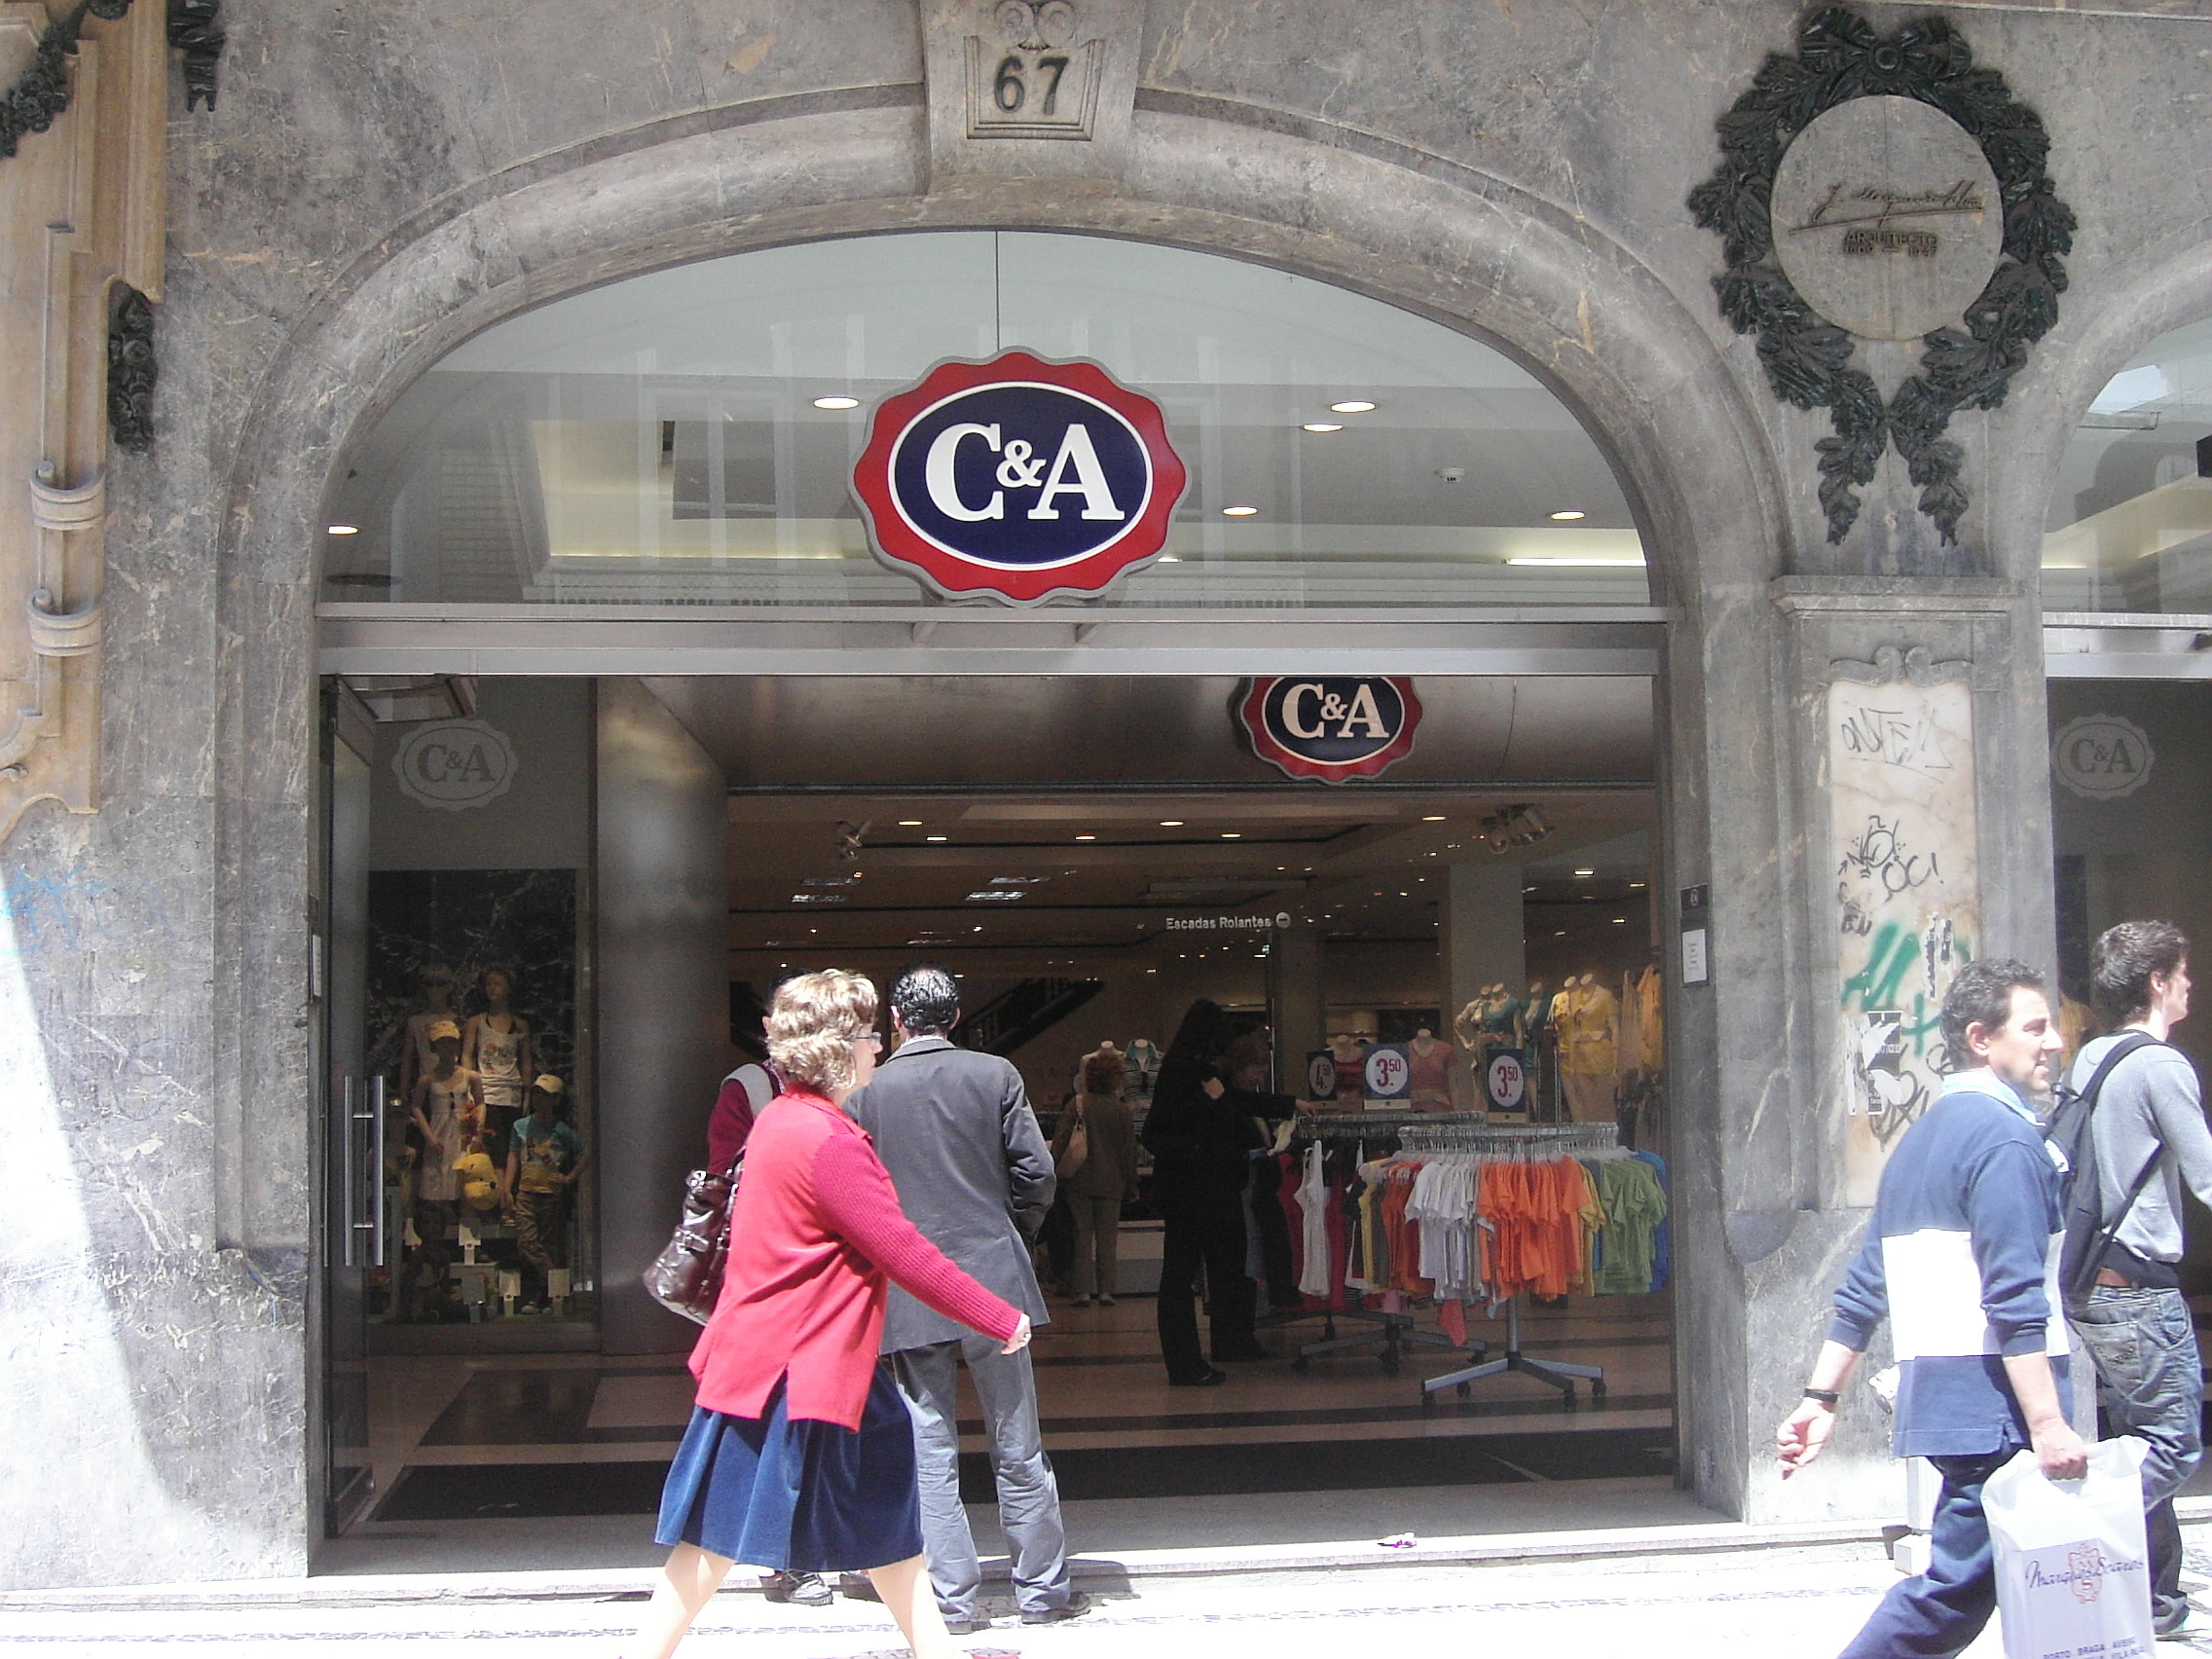 Retailers in Germany, C&A